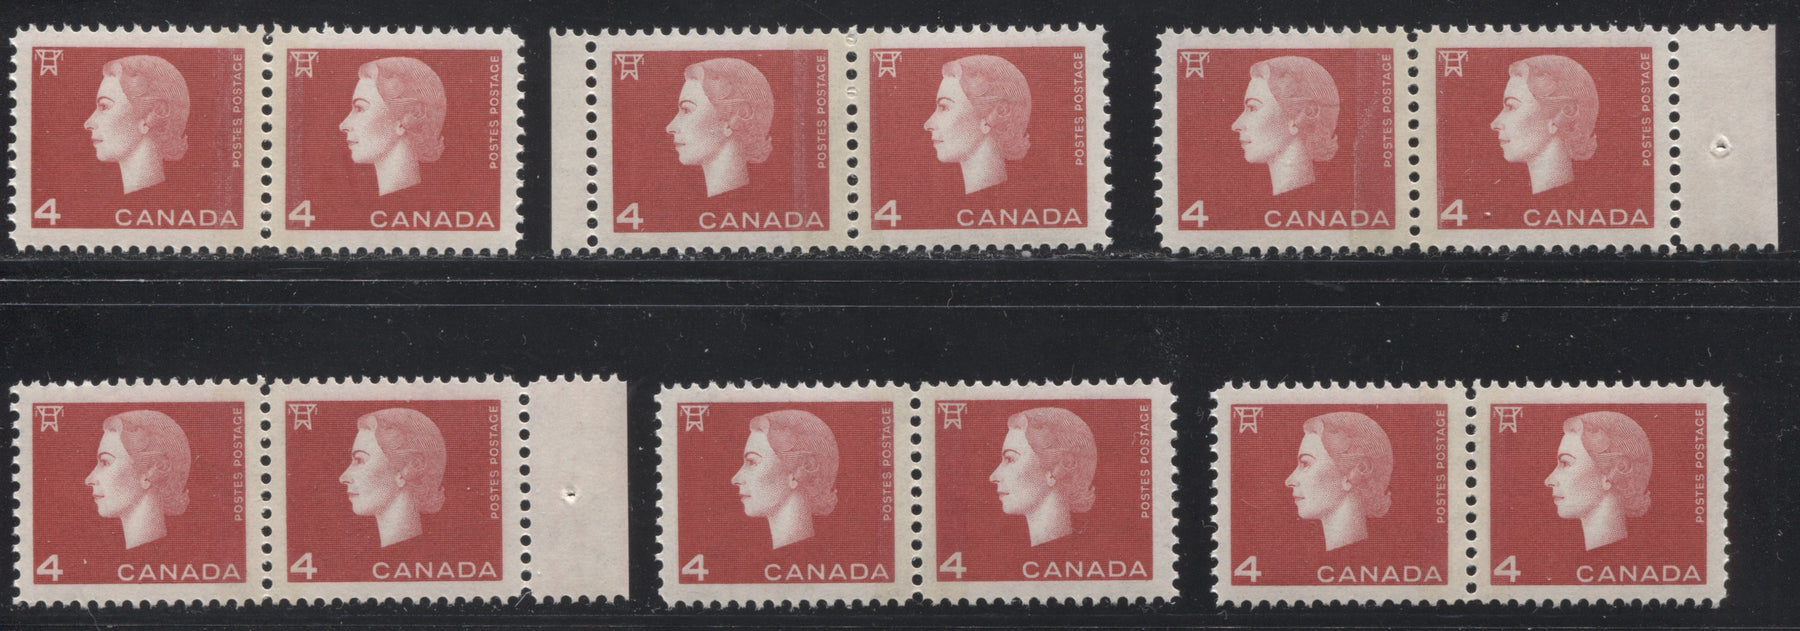 Canada #404x 4c Bright Red Queen Elizabeth II, 1962-1967 Cameo Issue, Six VFNH Winnipeg Split Bar Pairs, With Different Tagging Strengths, Perfs and Gums